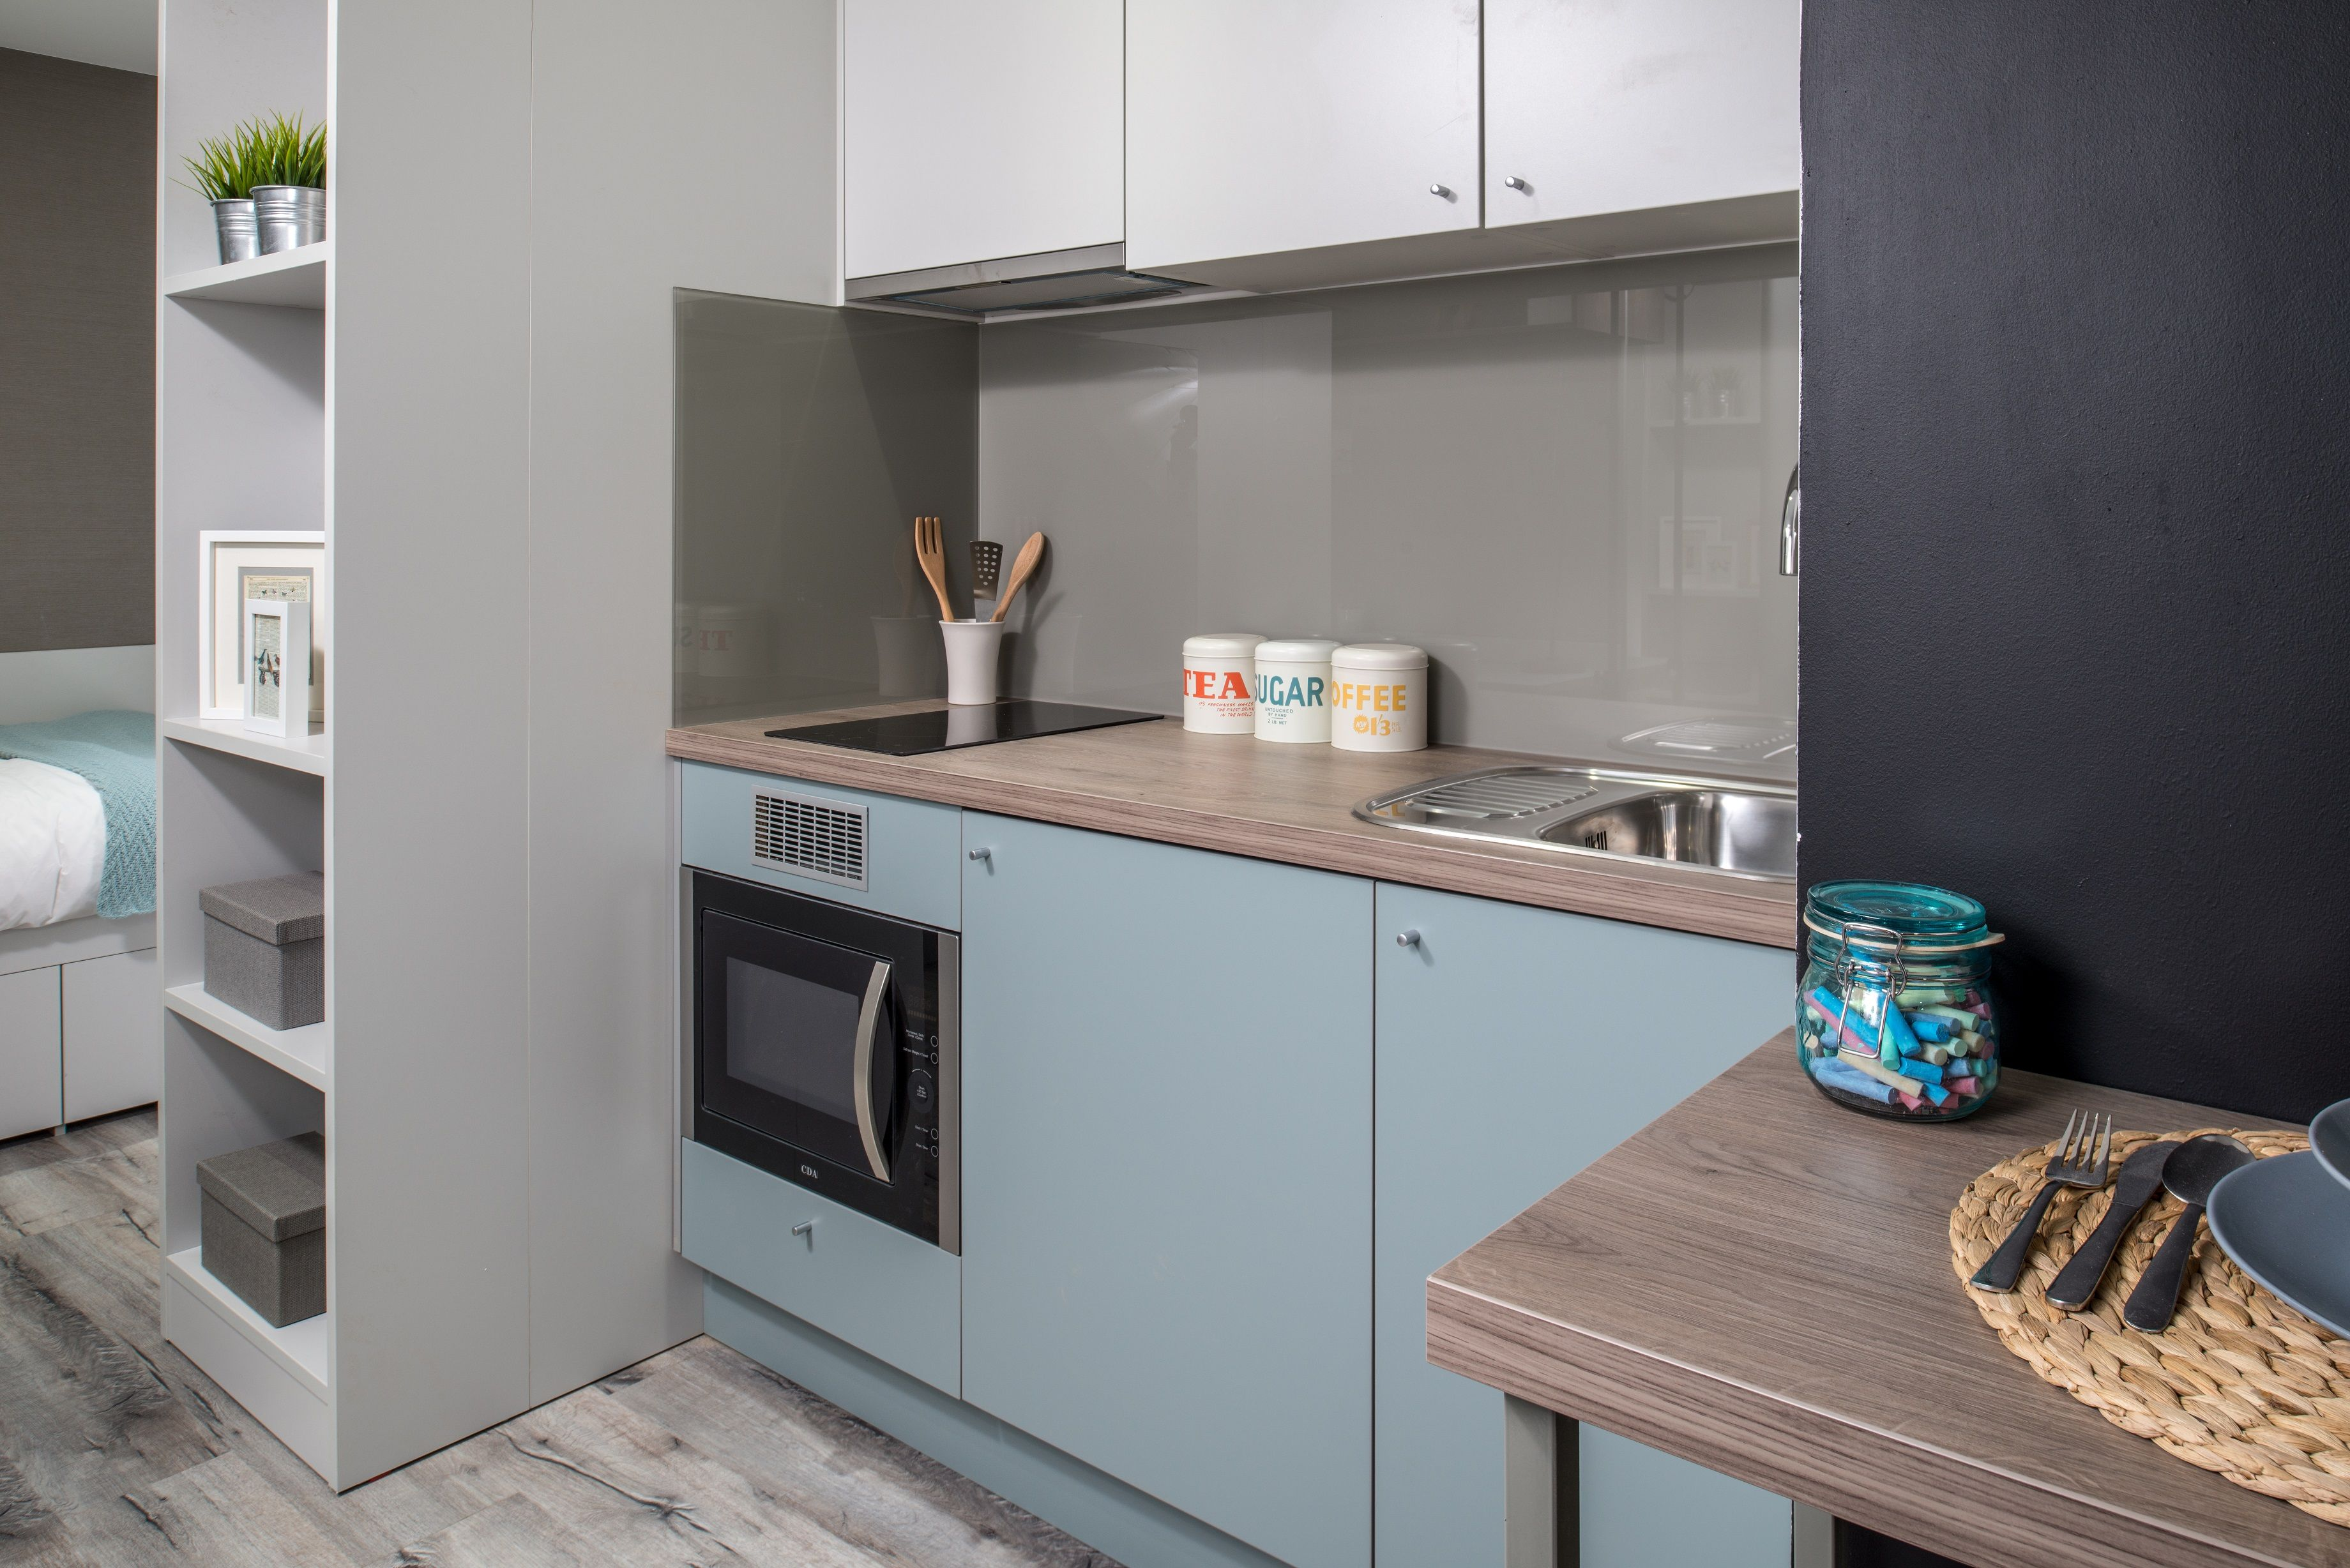 In the kitchen area U636 ST9 Fjord Green (https://www.egger.com/shop ...